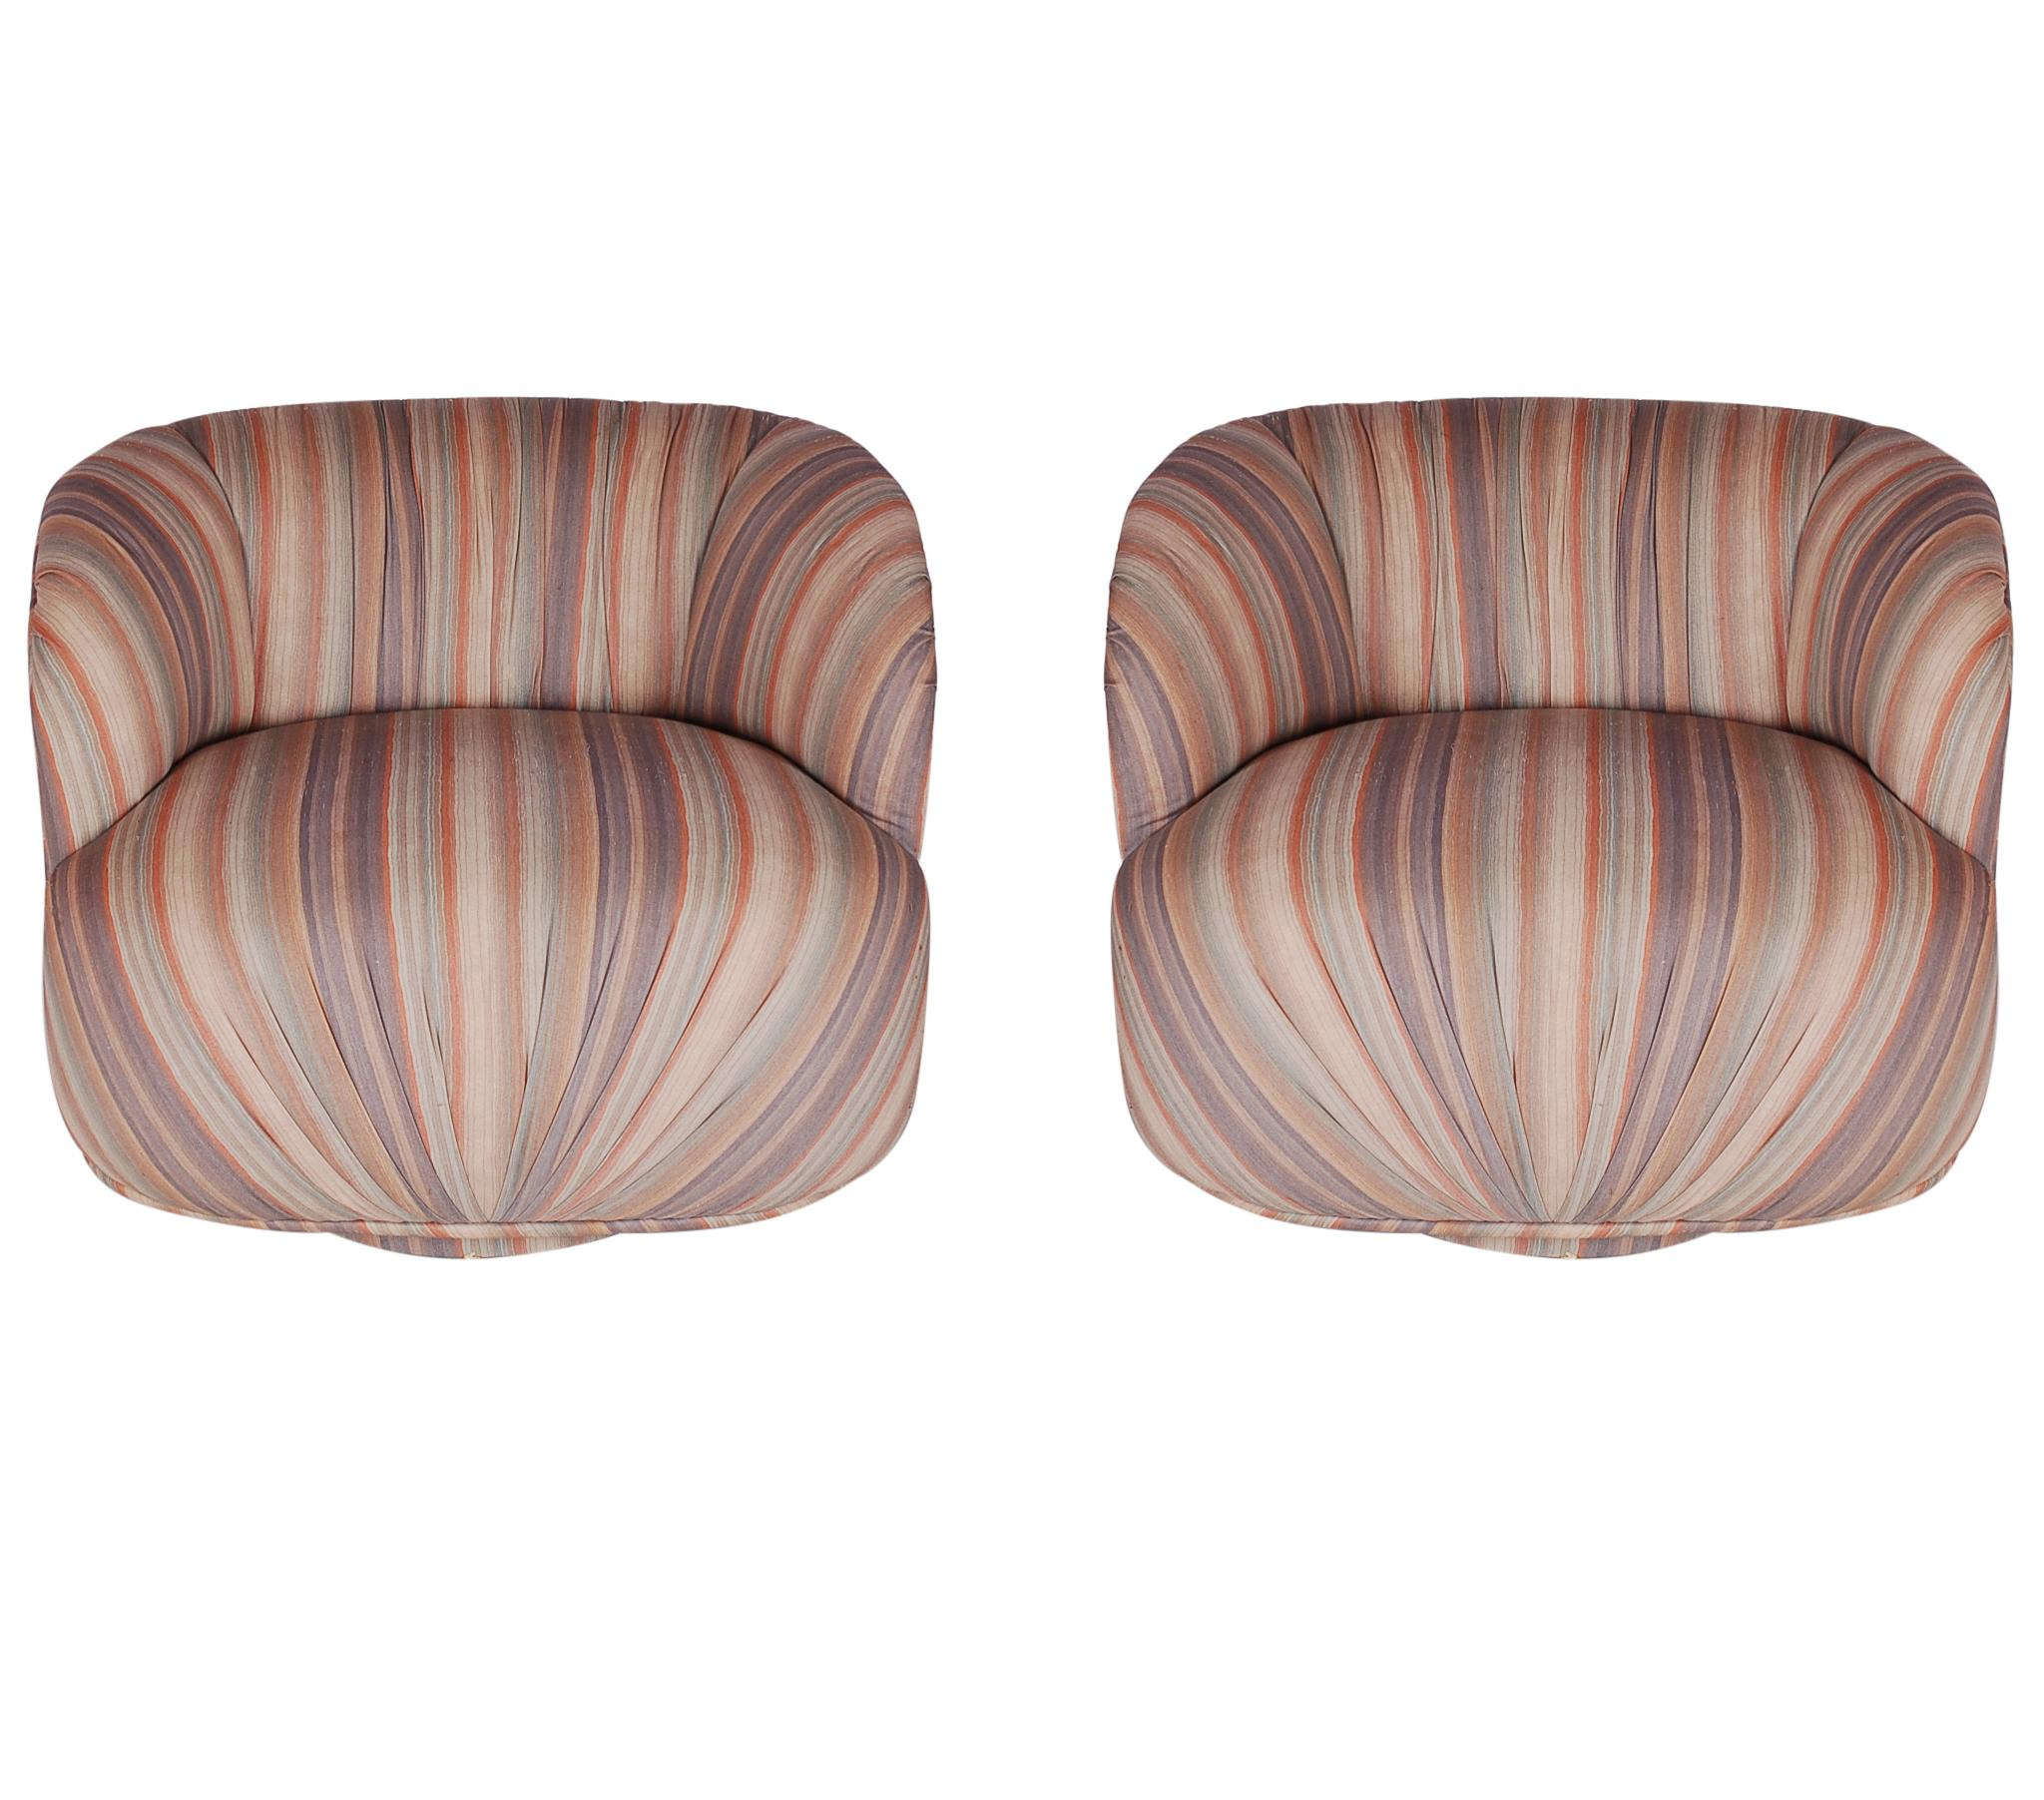 Genial Mid Century Modern Swivel Poof Lounge Chairs In The Manner Of Milo Baughman  For Sale